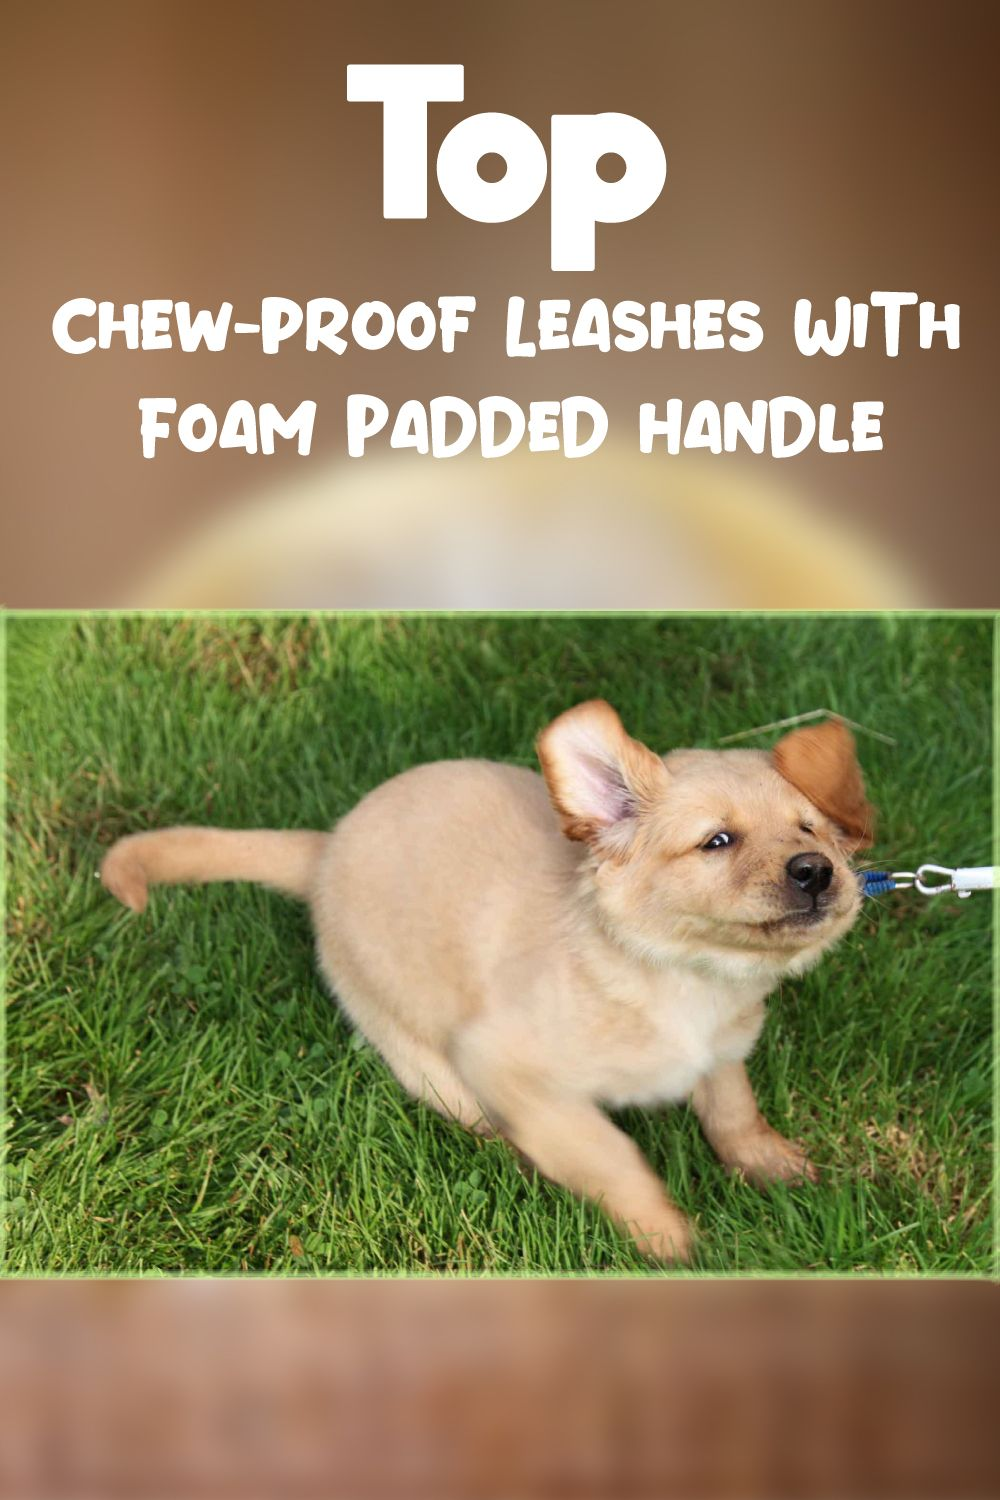 Find Some Best Dog Leashes With Foam Padded Handle